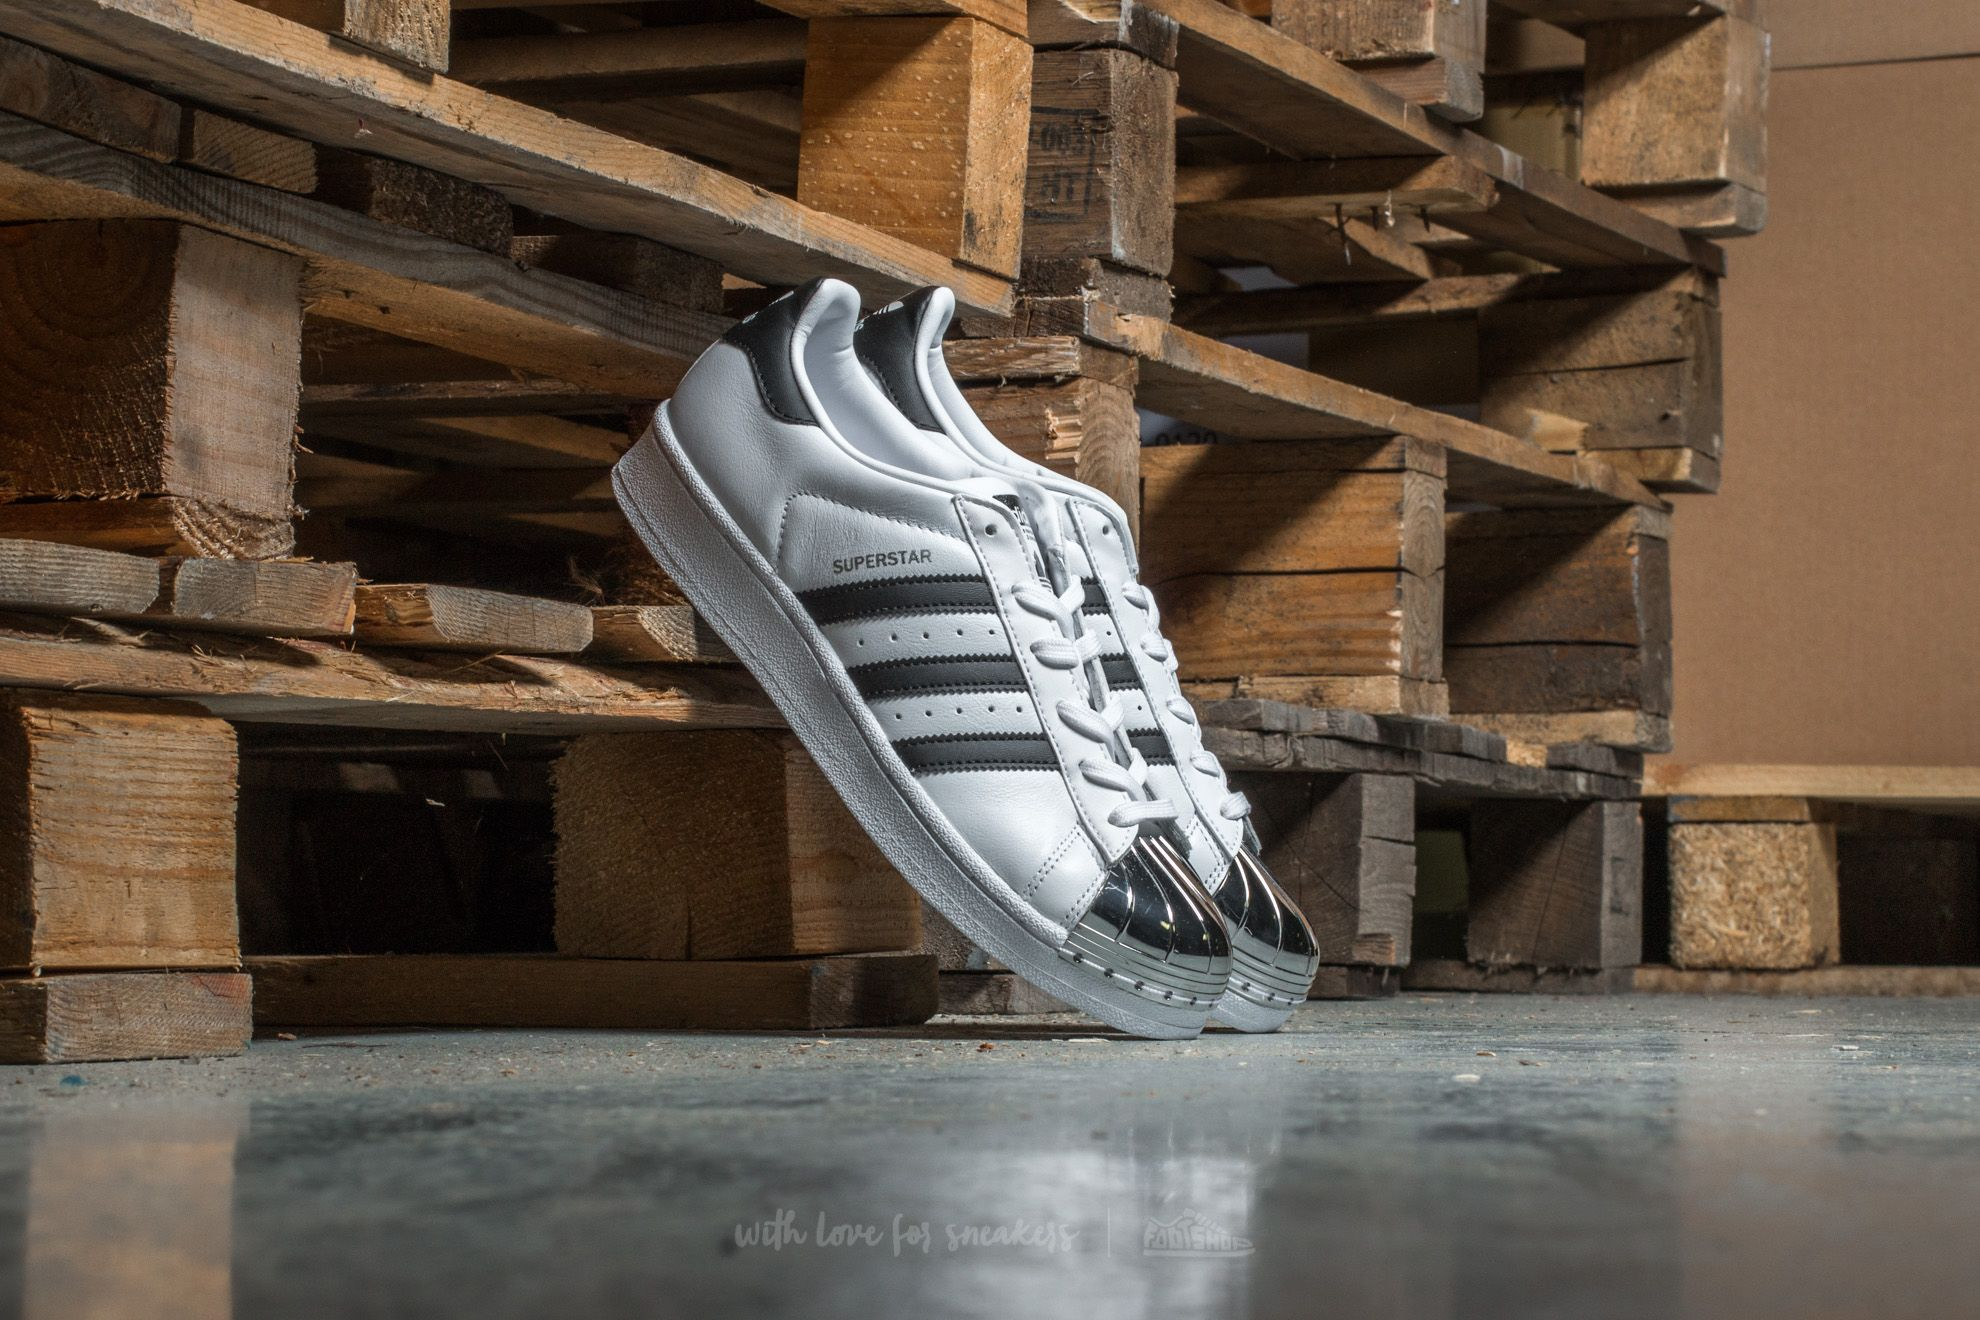 brand new 5e52a 516d2 adidas Superstar Metal Toe W. Ftw White  Core Black  Silver